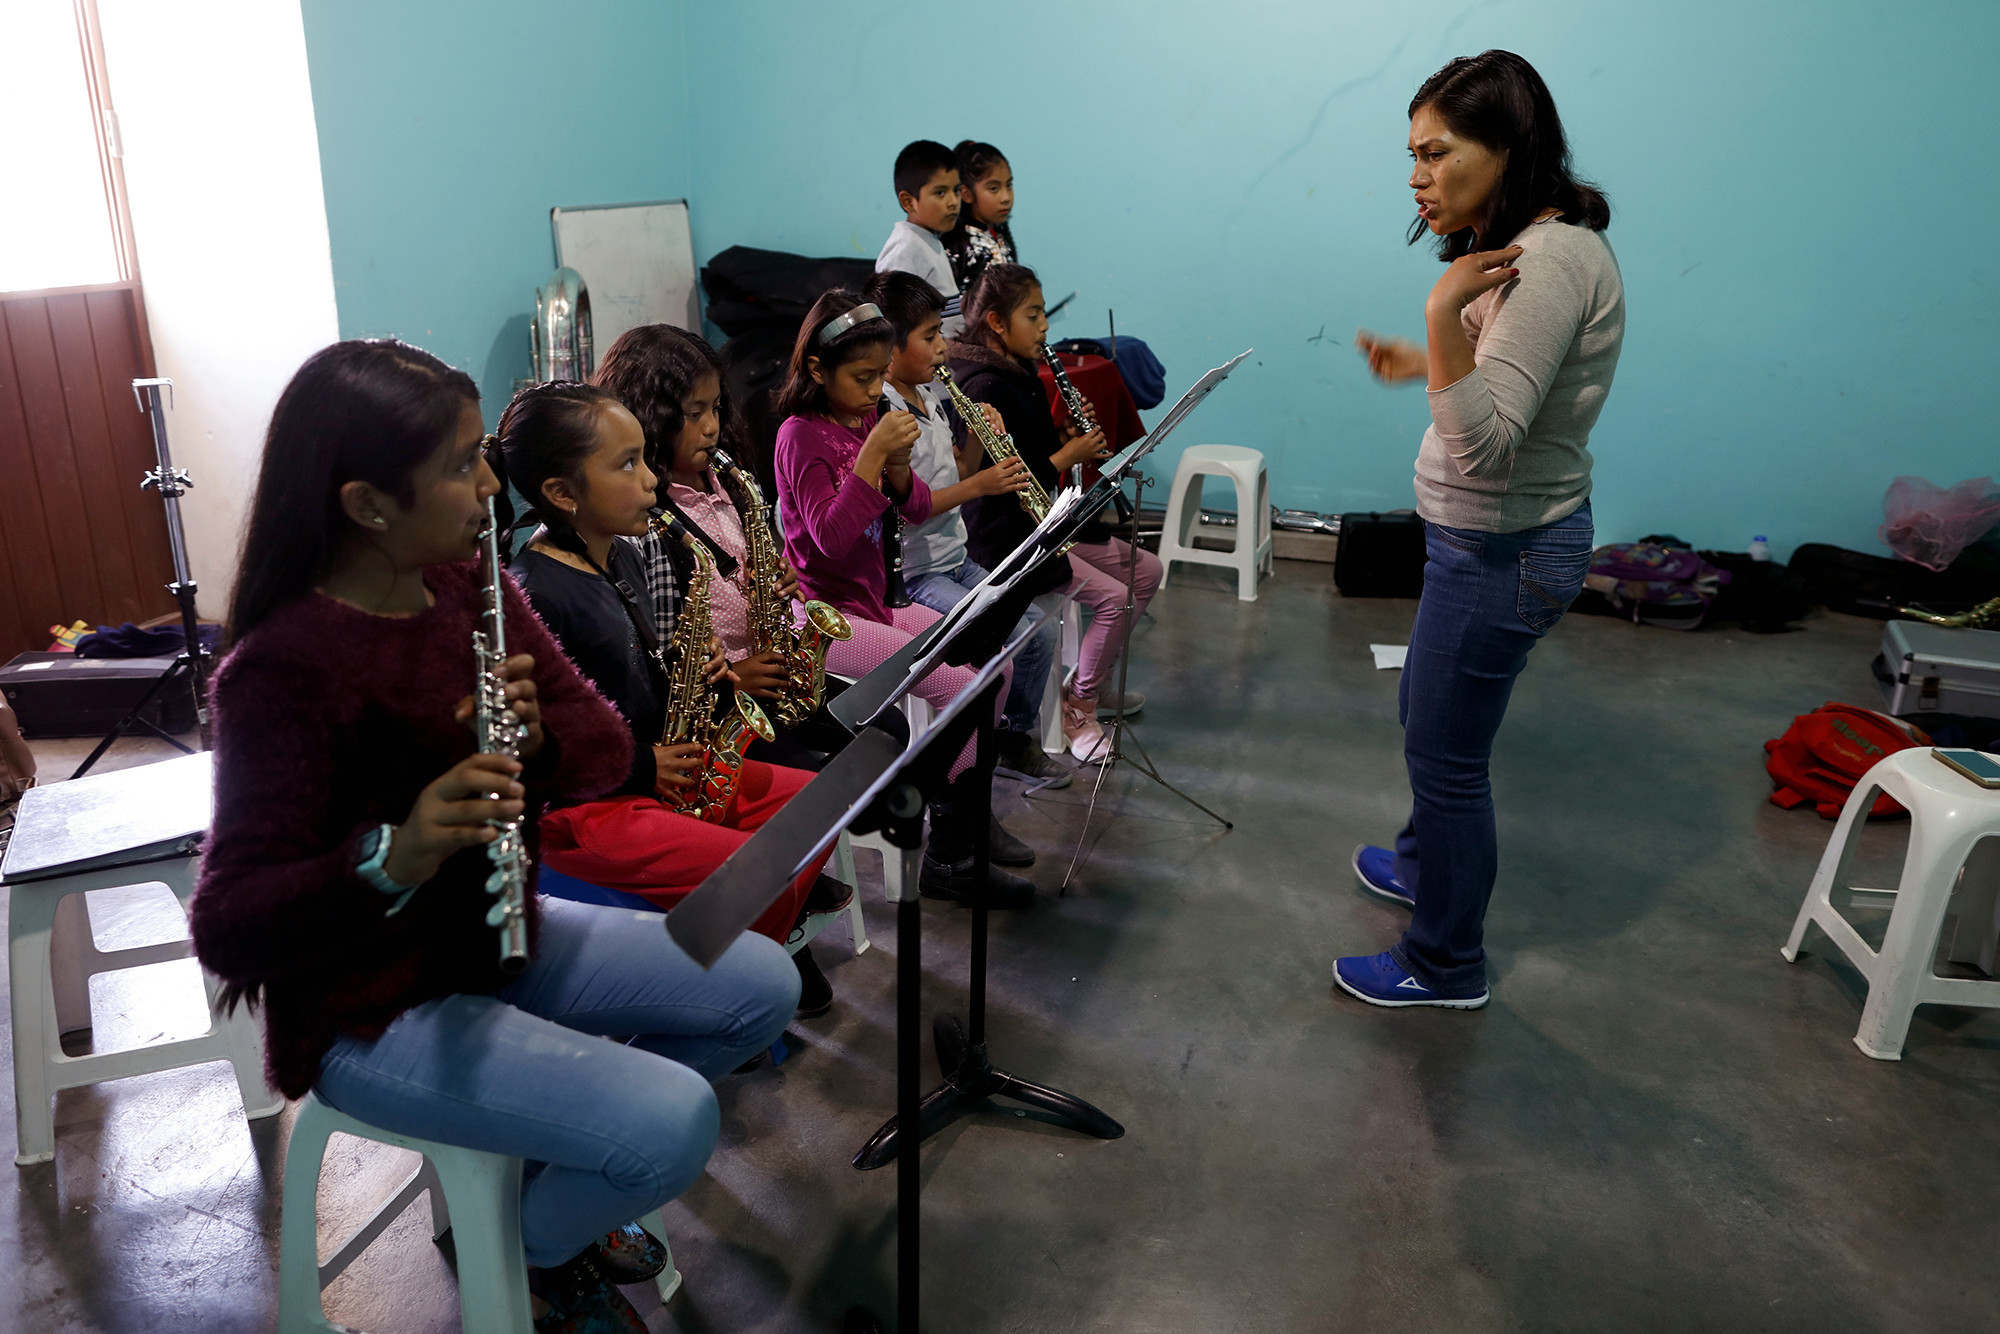 TLAXIACO, OAXACA — MONDAY, FEBRUARY 4, 2019: Guadalupe Ramirez, right, gives music lessons to stude